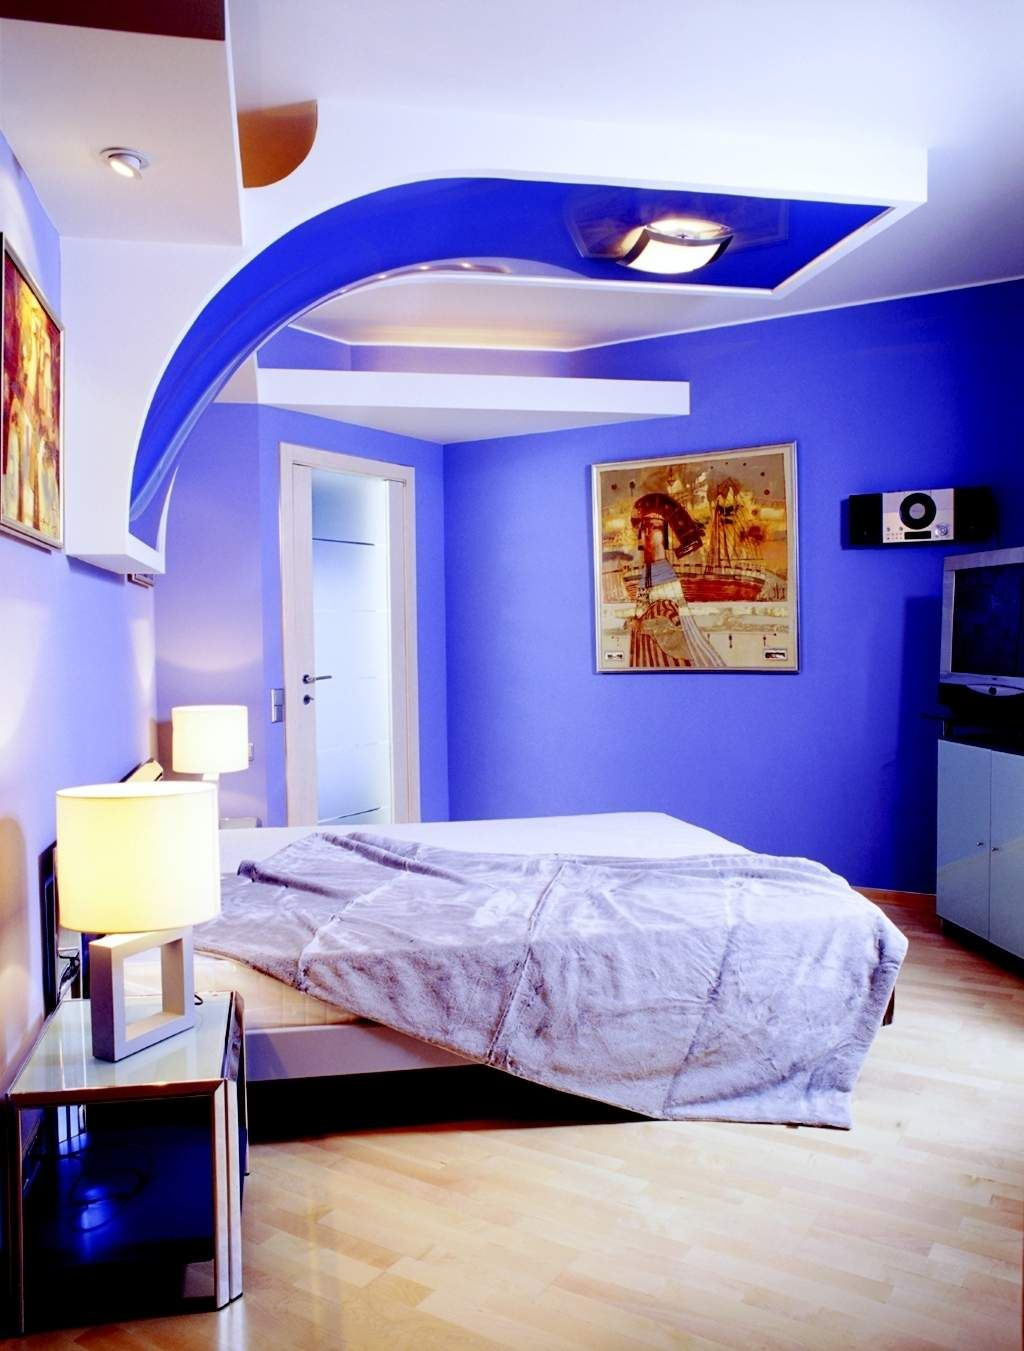 Kids Bedroom Color Schemes Kids Bedroom Futuristic Design Of Boys Bedroom In Bright Blue And